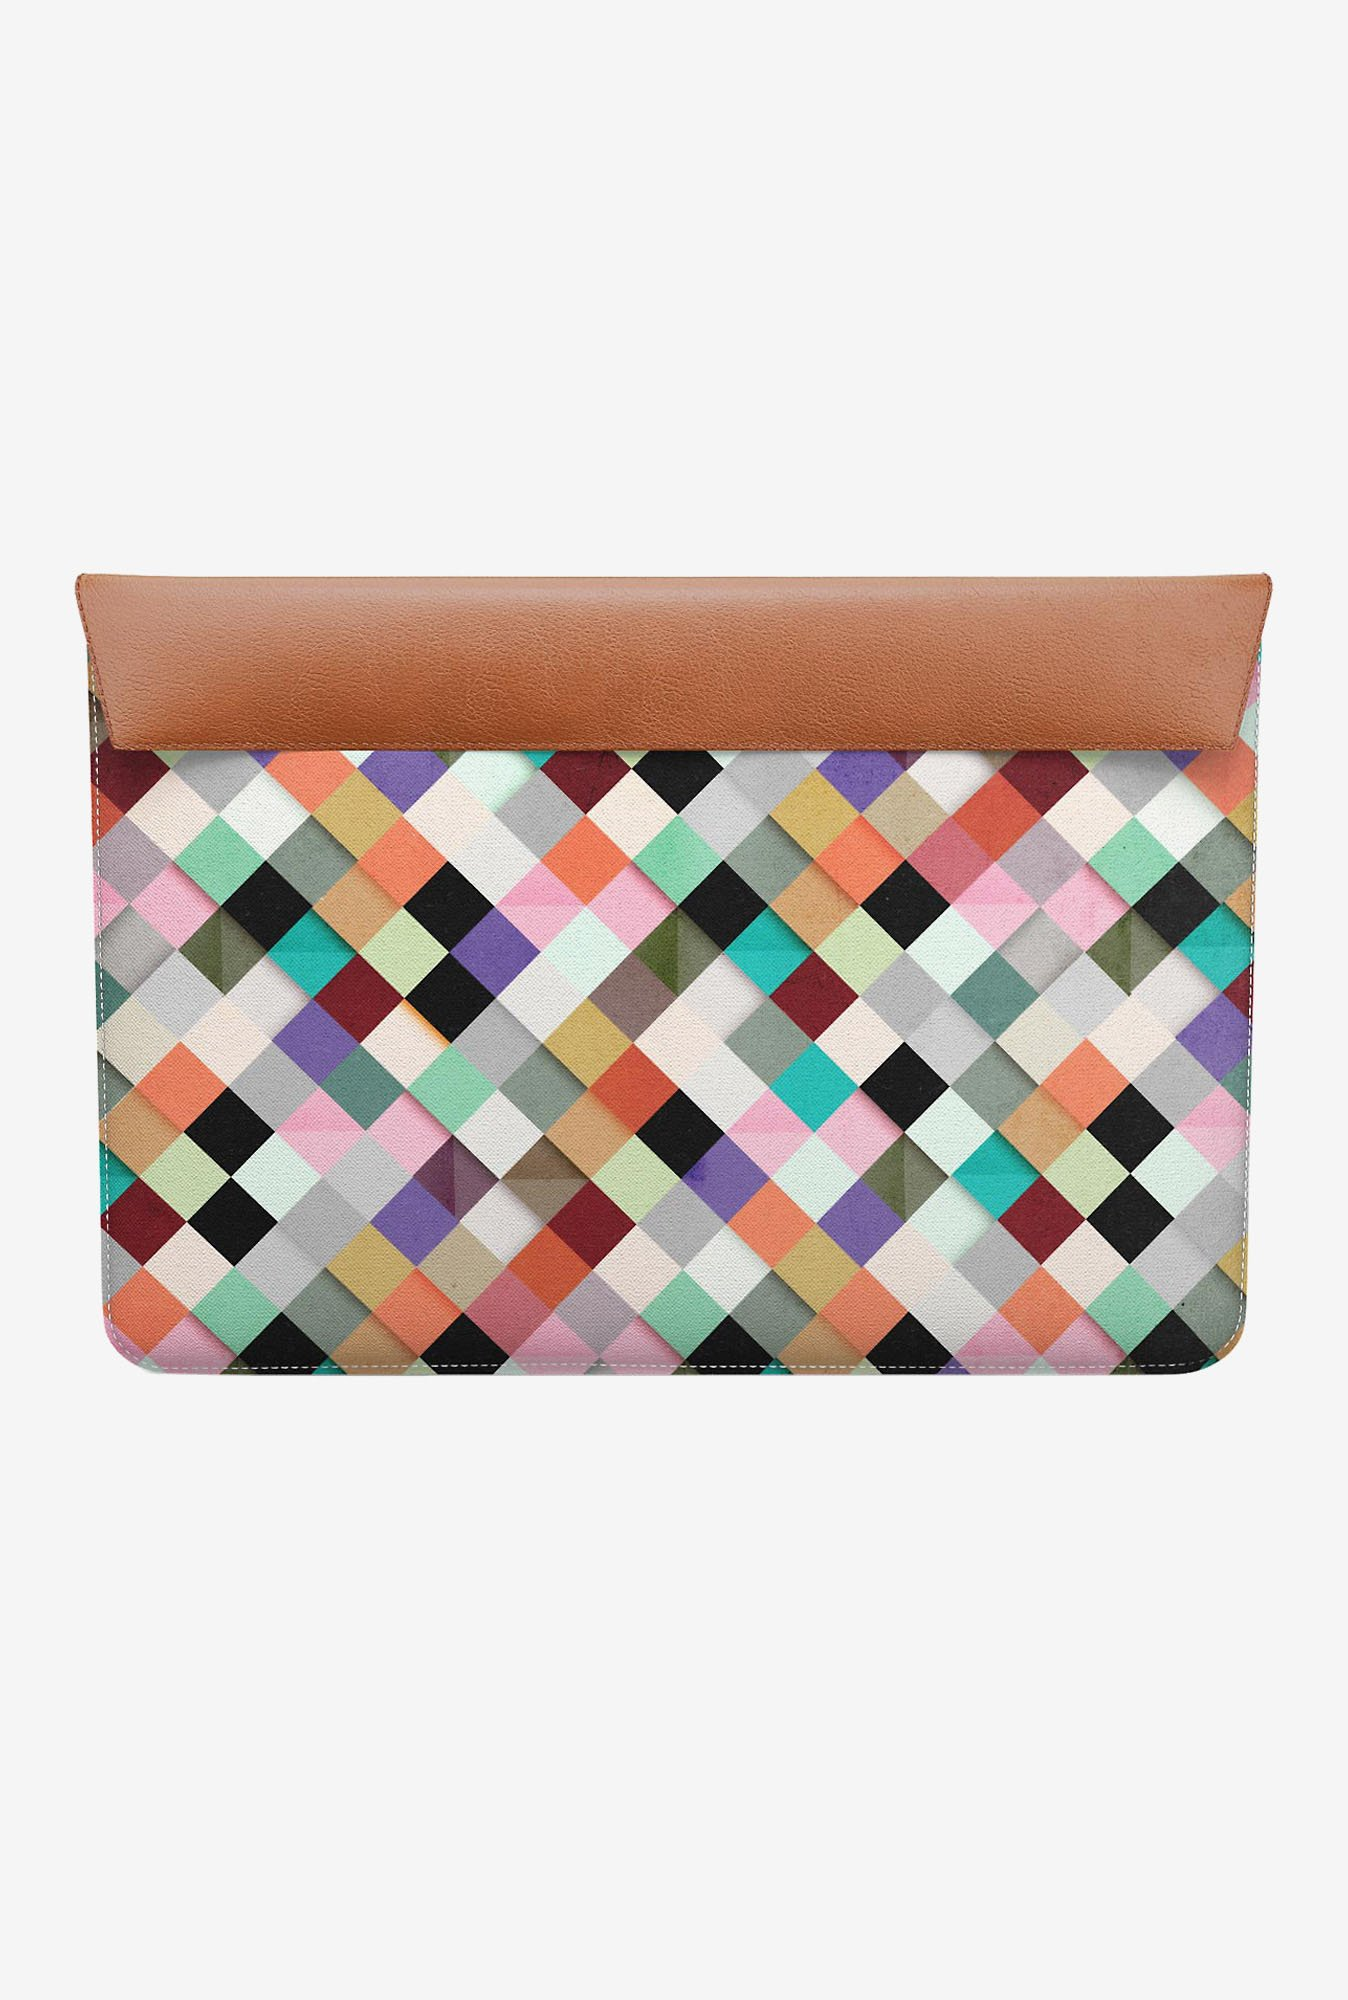 DailyObjects Pastels MacBook Air 13 Envelope Sleeve